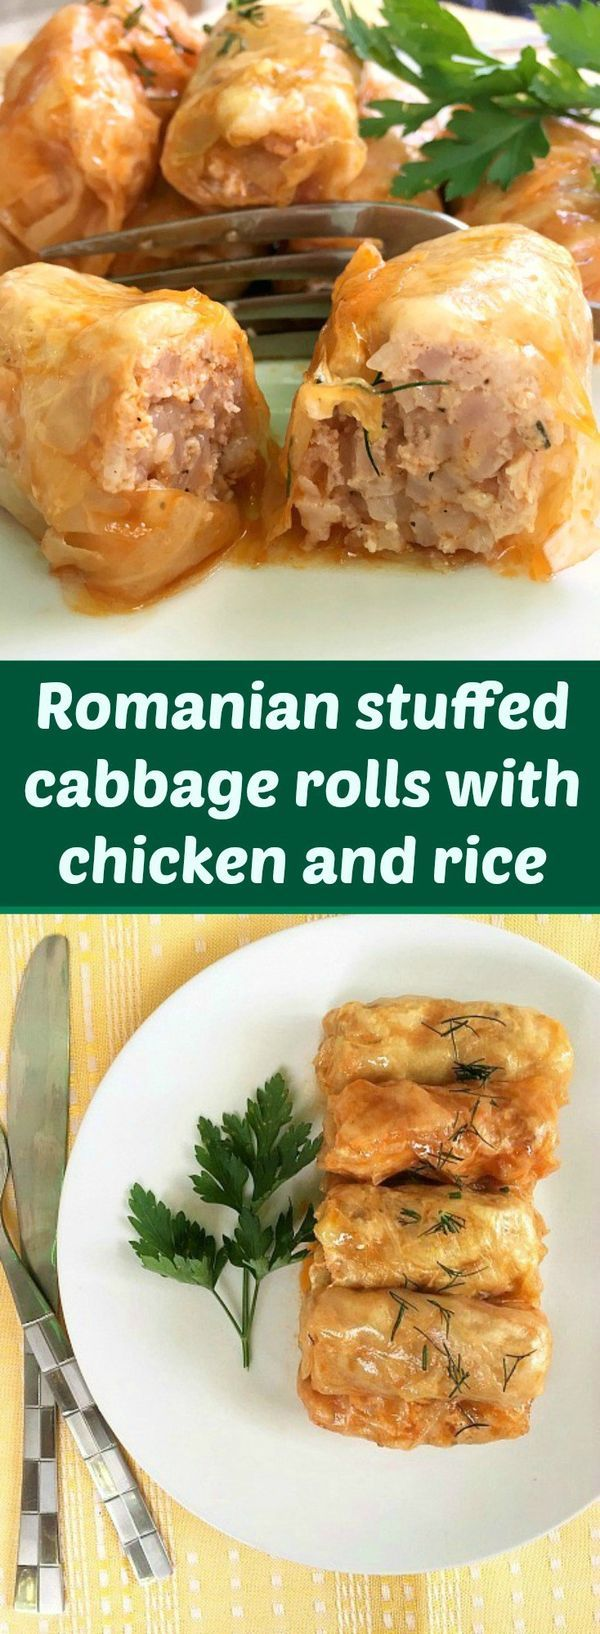 Romanian stuffed cabbage rolls with chicken and rice or sarmale, the country's national dish. An amazingly delicious recipe that is always cooked for important holidays.✖️More Pins Like This One At FOSTERGINGER @ Pinterest✖️